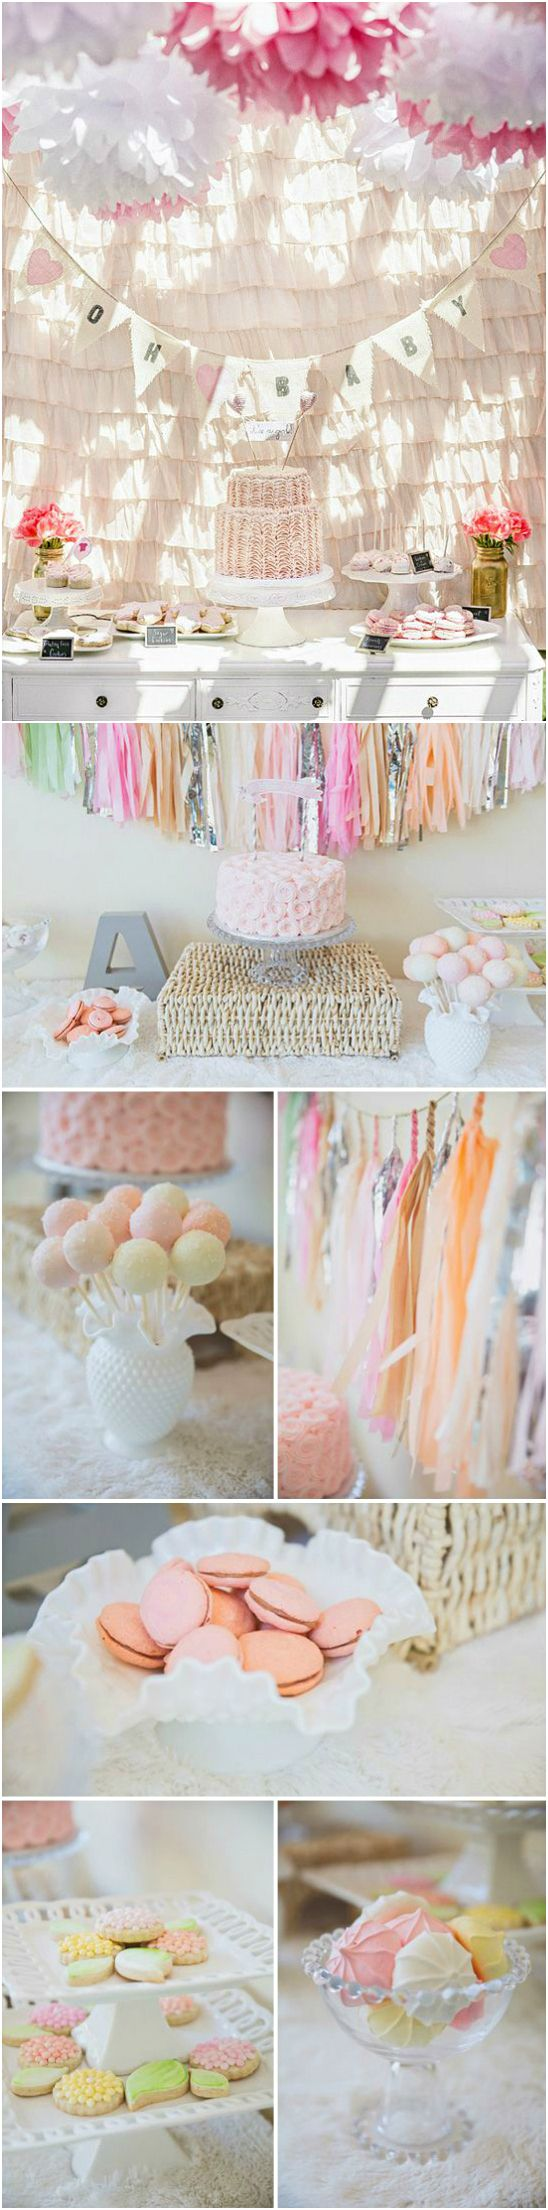 Party ● Baby Shower ● Pastel Decorations